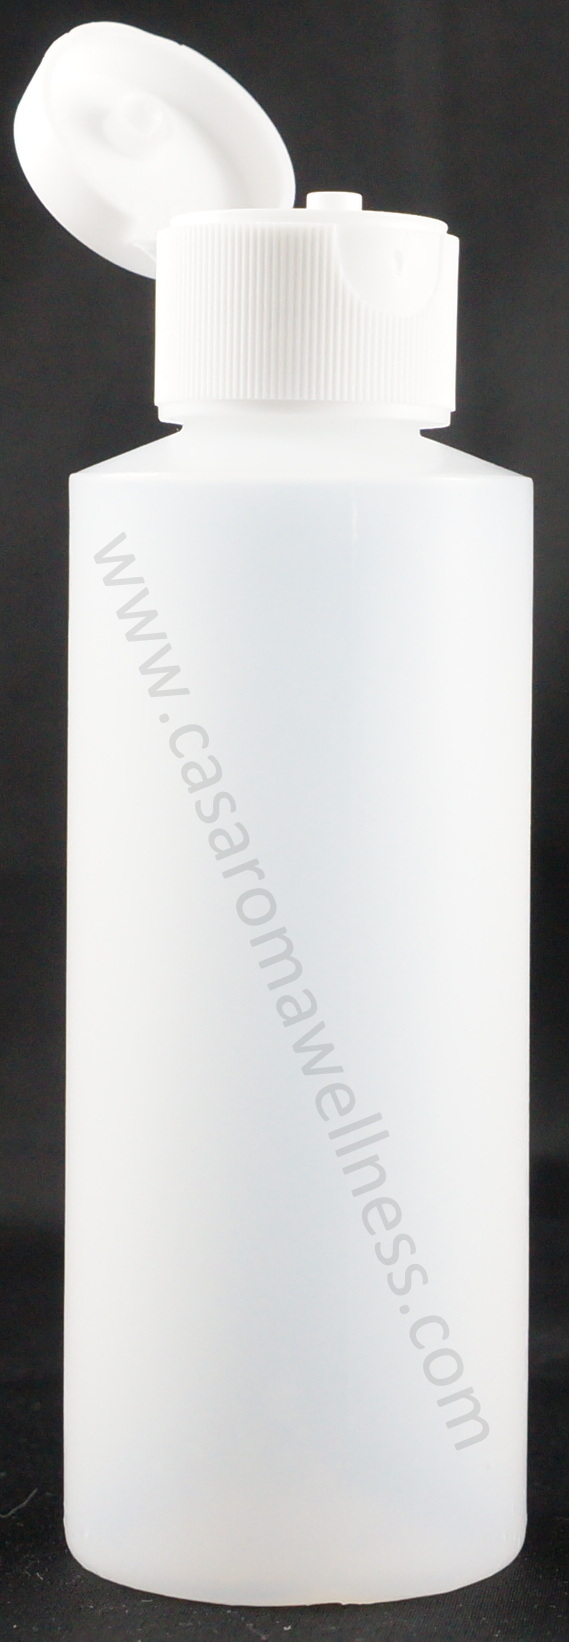 HDPE Bottle (plastic) no lid